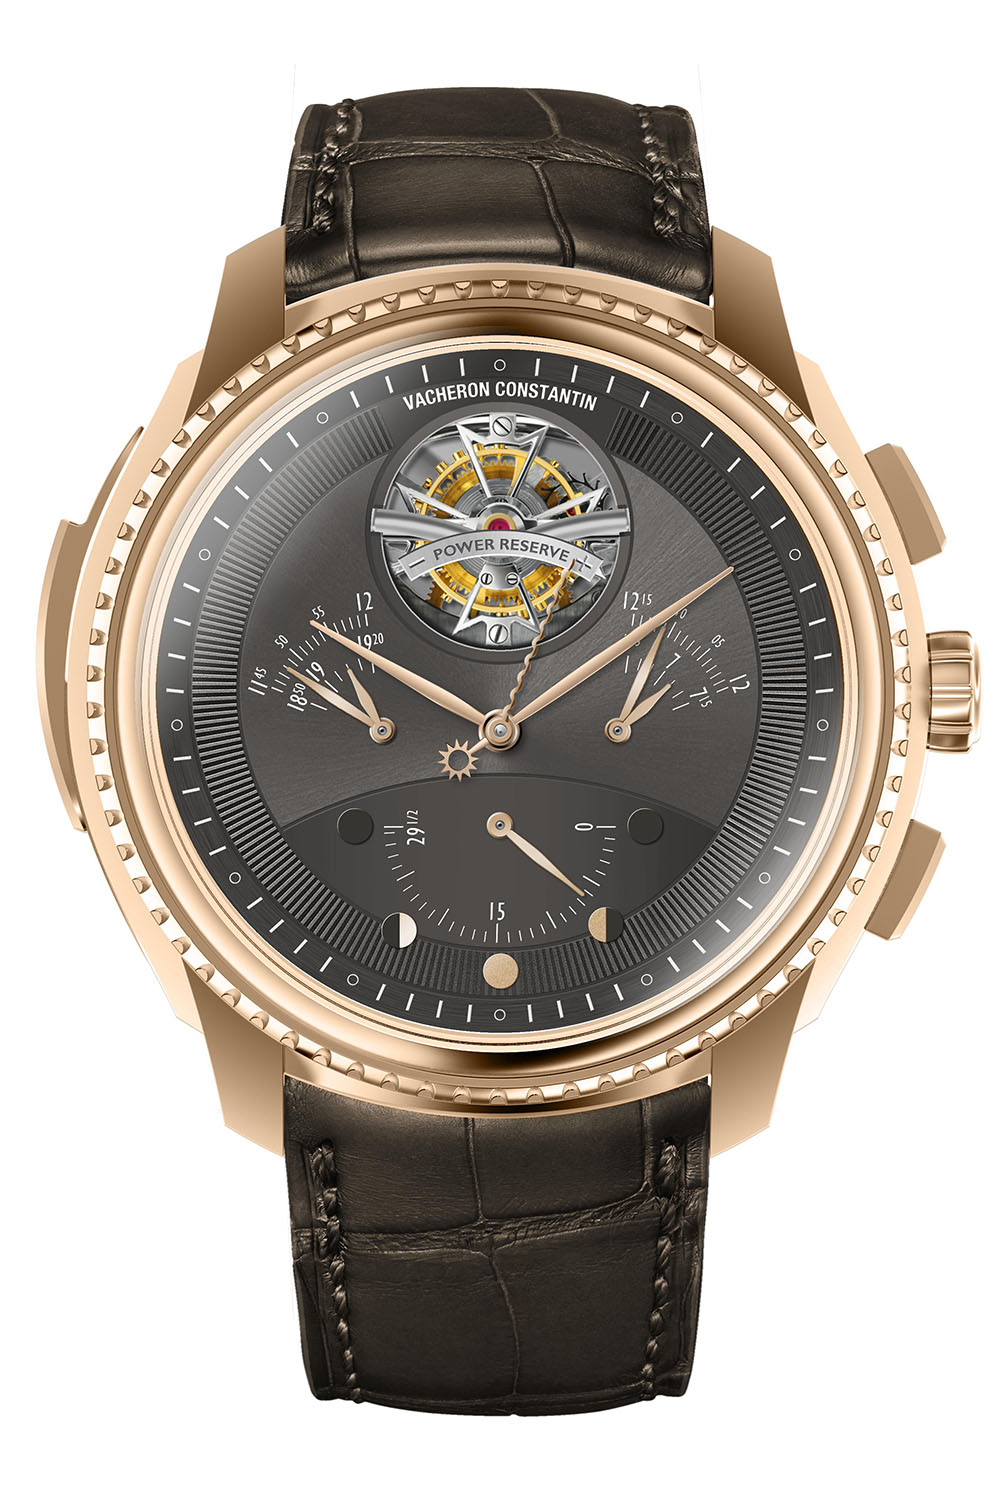 Vacheron Constantin Les Cabinotiers Grand Complication Split-seconds chronograph Tempo - 9740C - 1